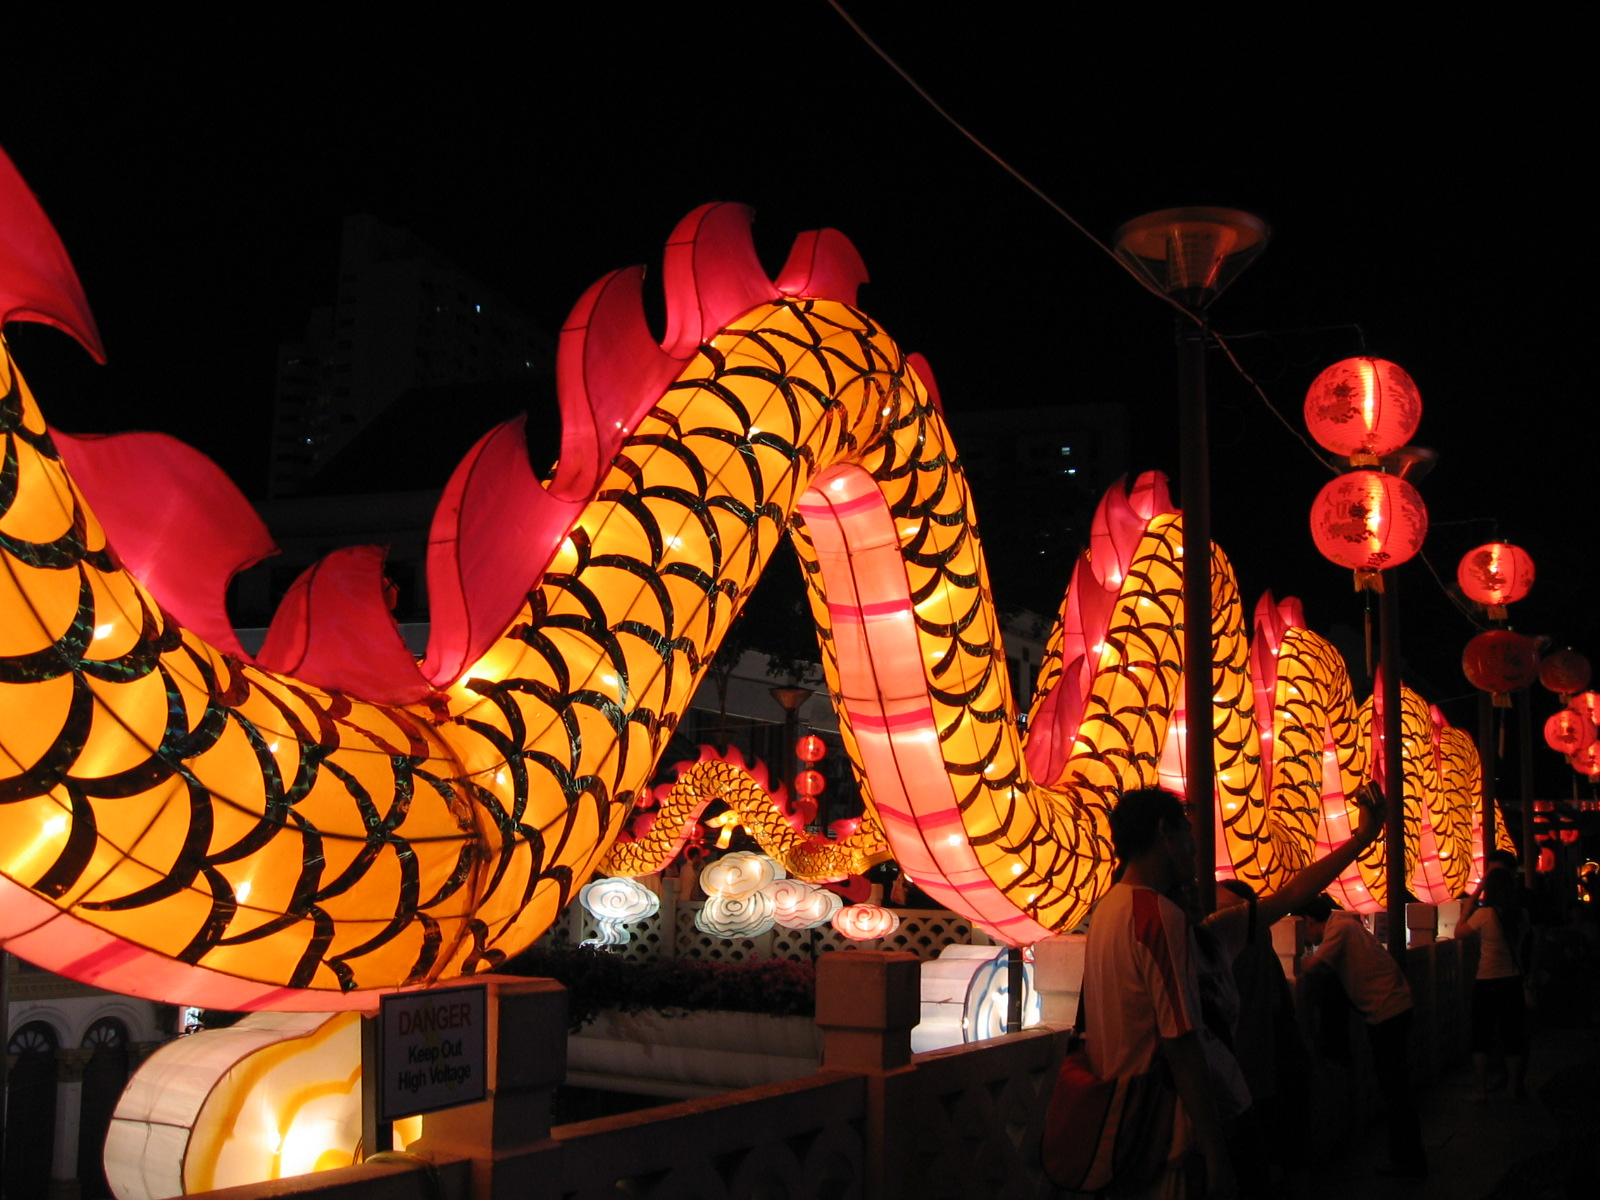 chinese moon festival - HD1600×1200